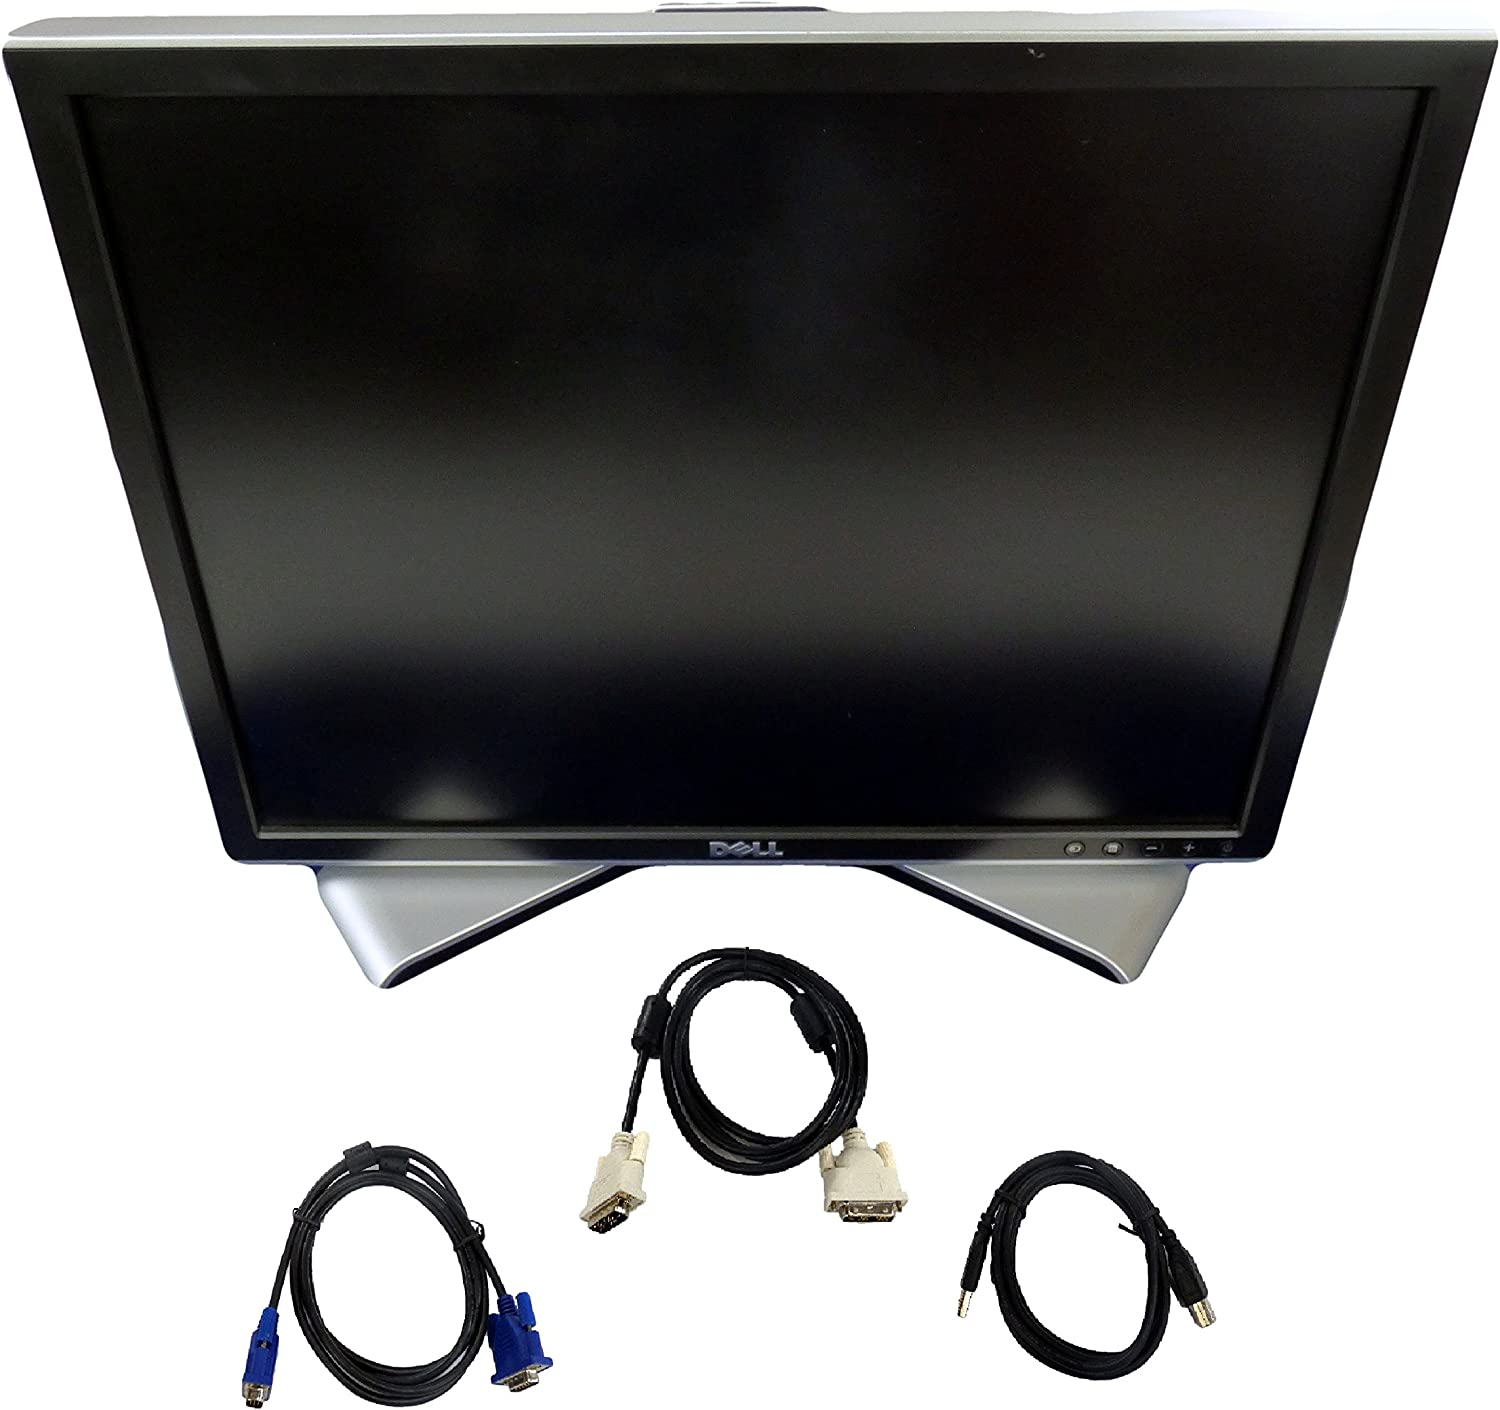 Dell 2007FP 20.1 Inch Ultrasharp 1600x1200 Flat Panel Monitor with Height-Adjustable stand – C9536